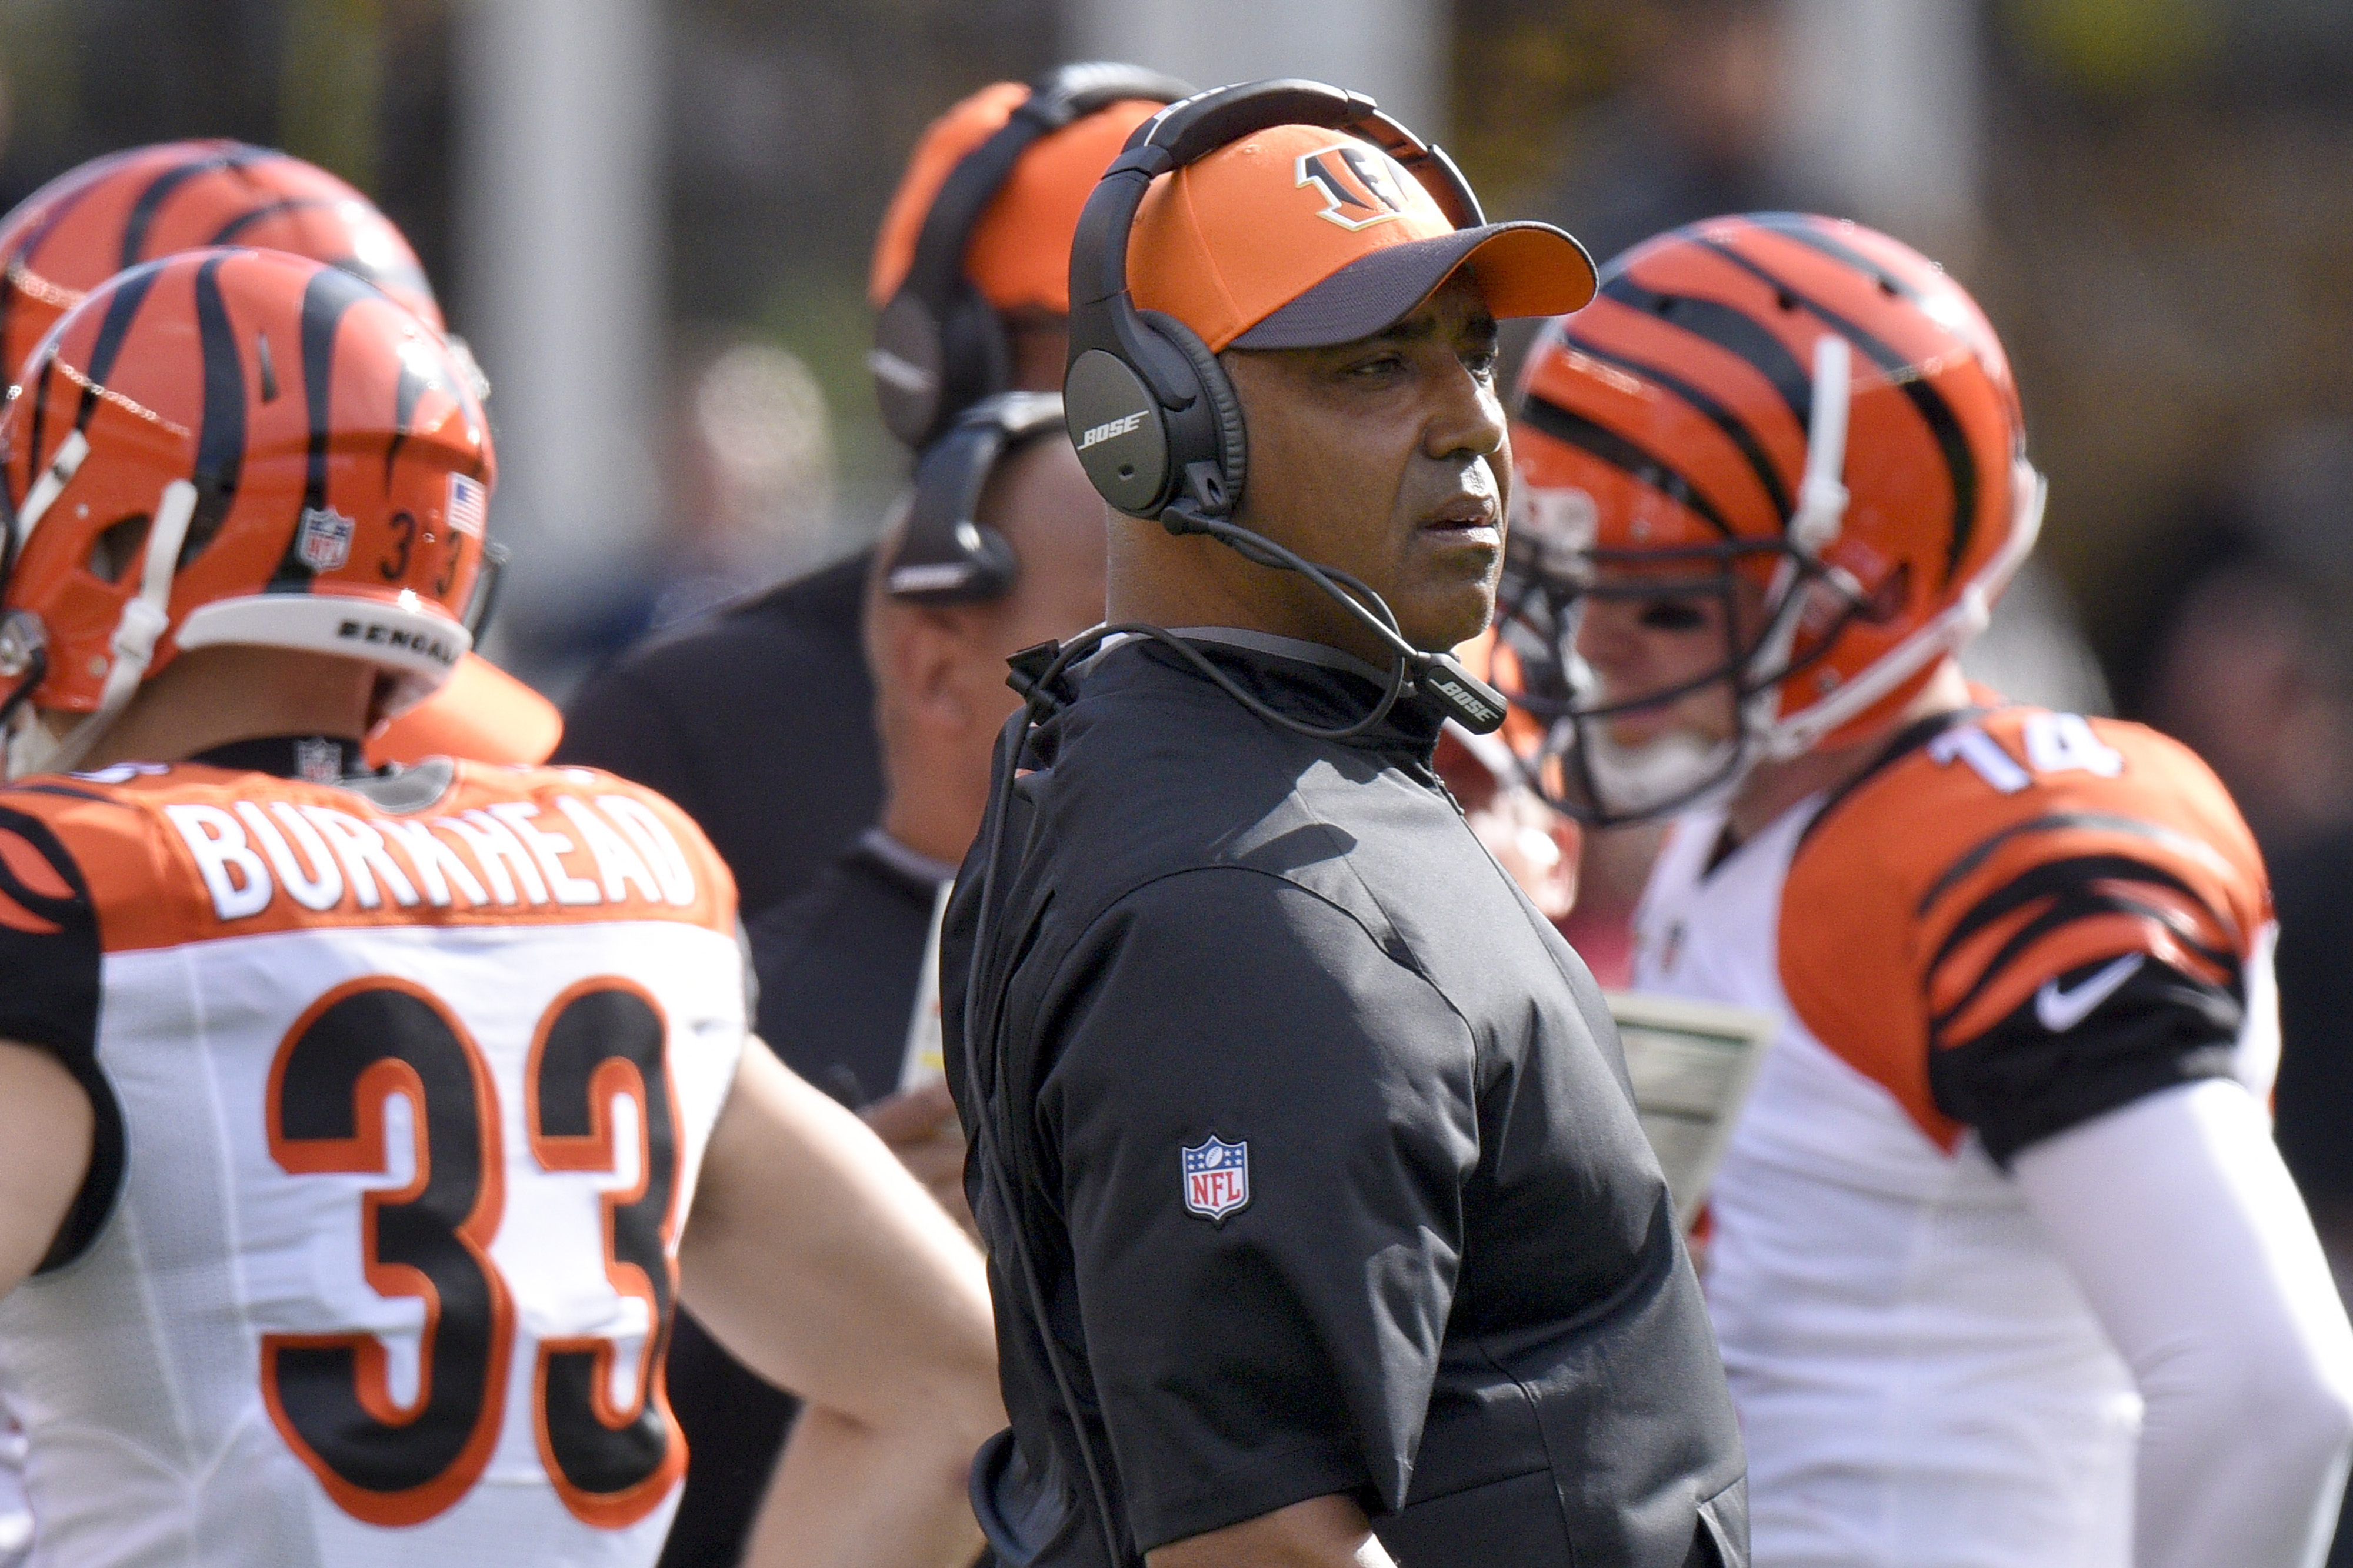 Cincinnati Bengals head coach Marvin Lewis looks to the field as the offense leaves the field in the first half of an NFL football game against the Pittsburgh Steelers, Sunday, Nov. 1, 2015, in Pittsburgh. The Bengals won 16-10. (AP Photo/Don Wright)